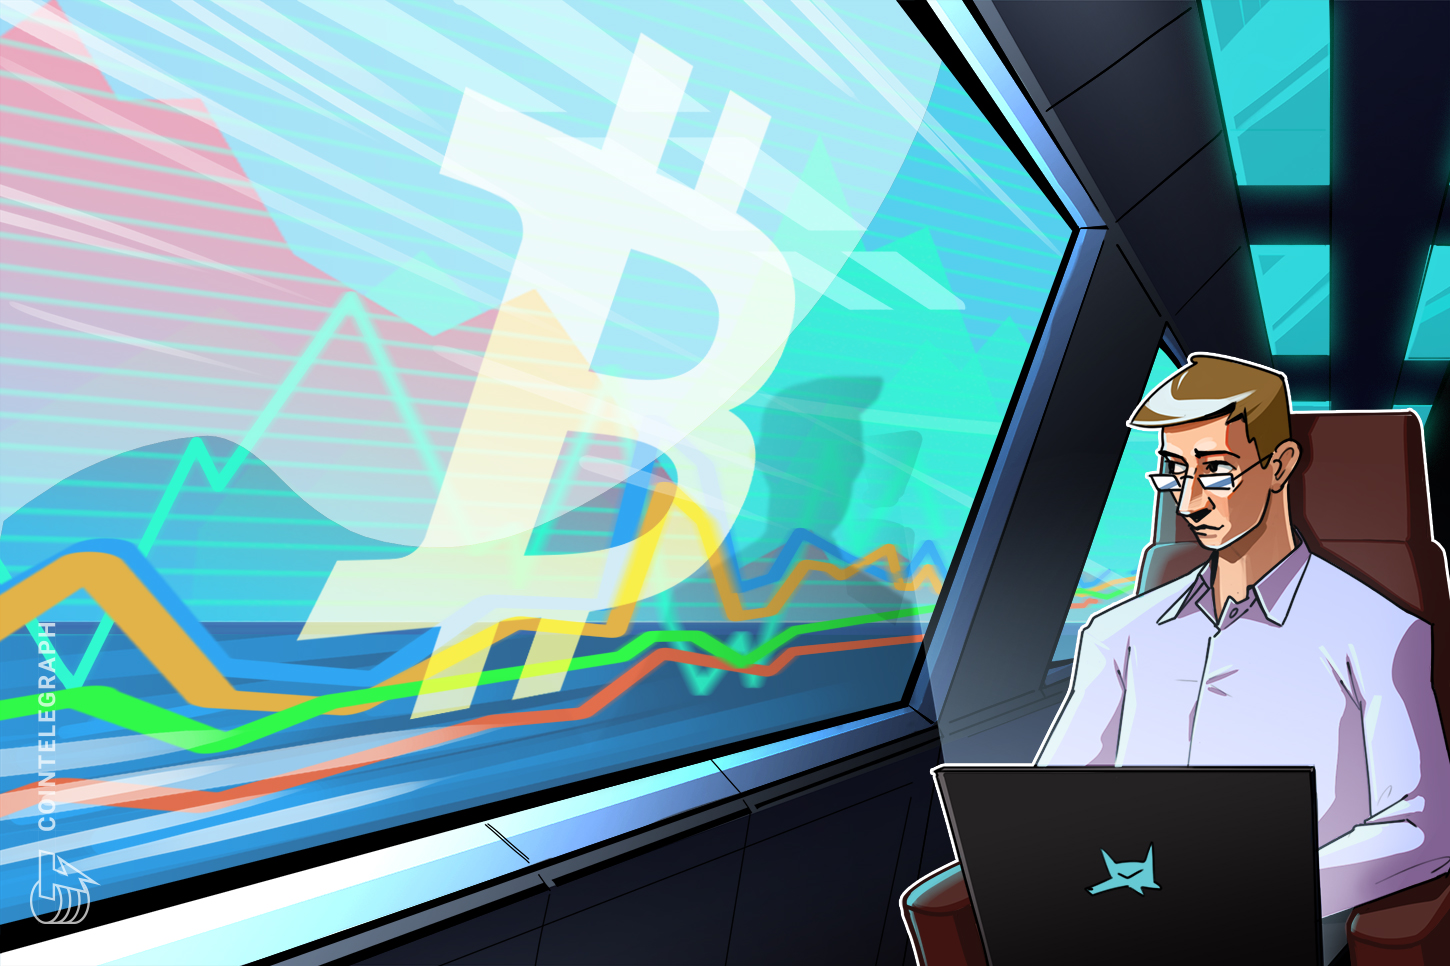 Traders are withdrawing 2,000 BTC from centralized exchanges daily